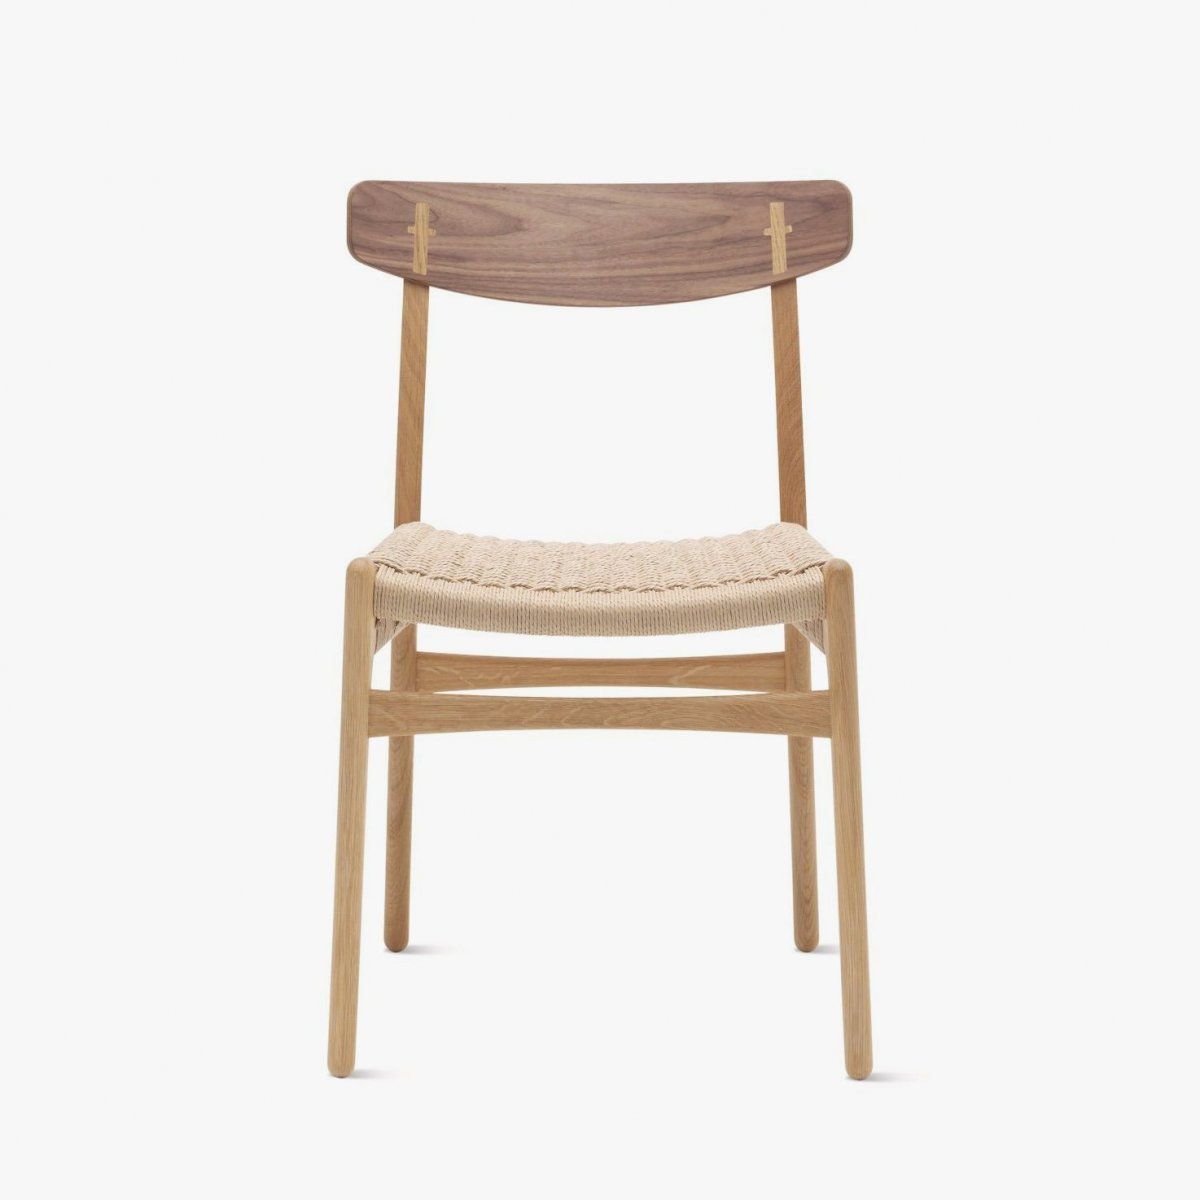 CH23 Chair, oak + walnut, front view.